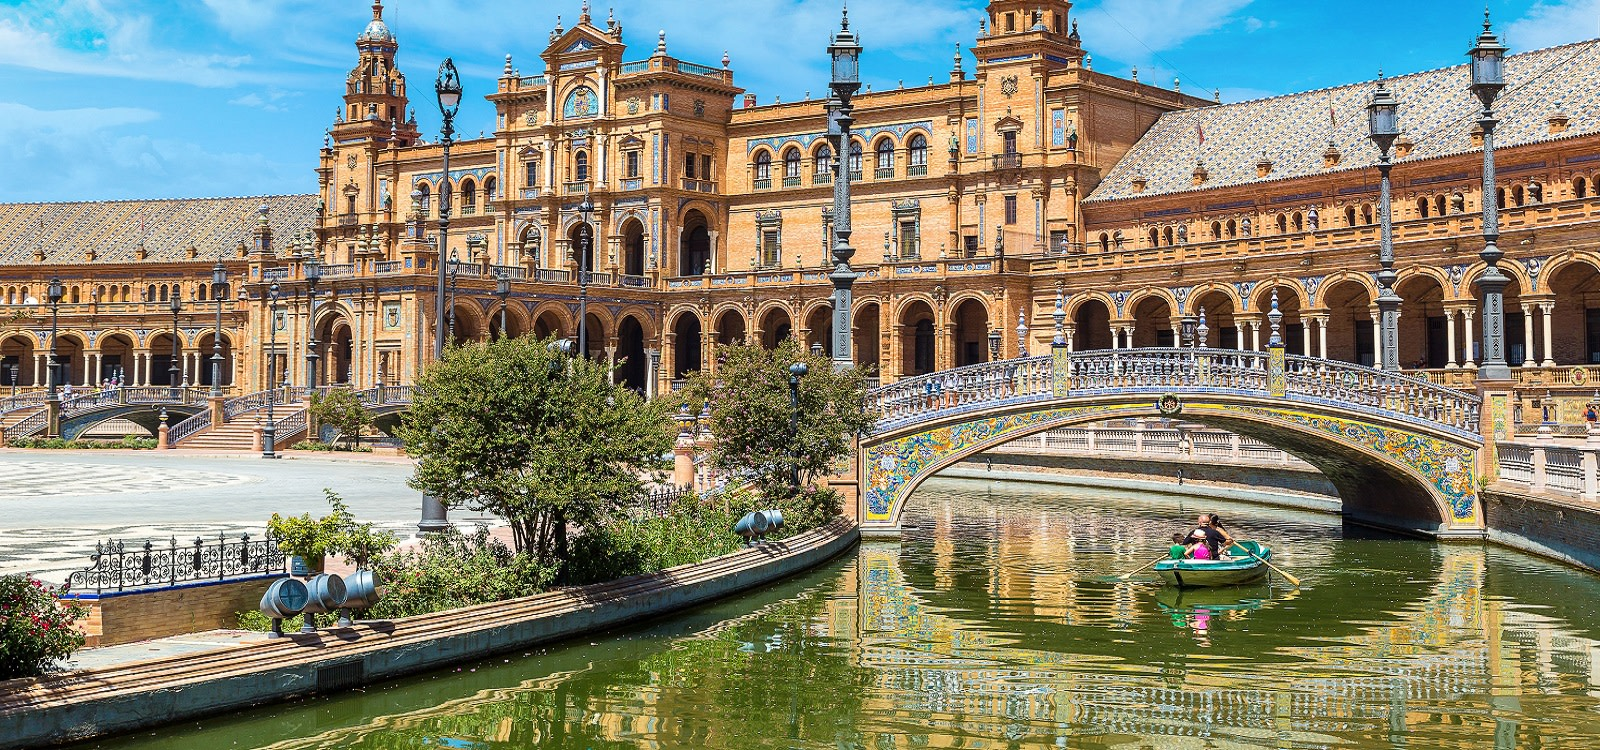 Best things to do in Spain - boating in Seville